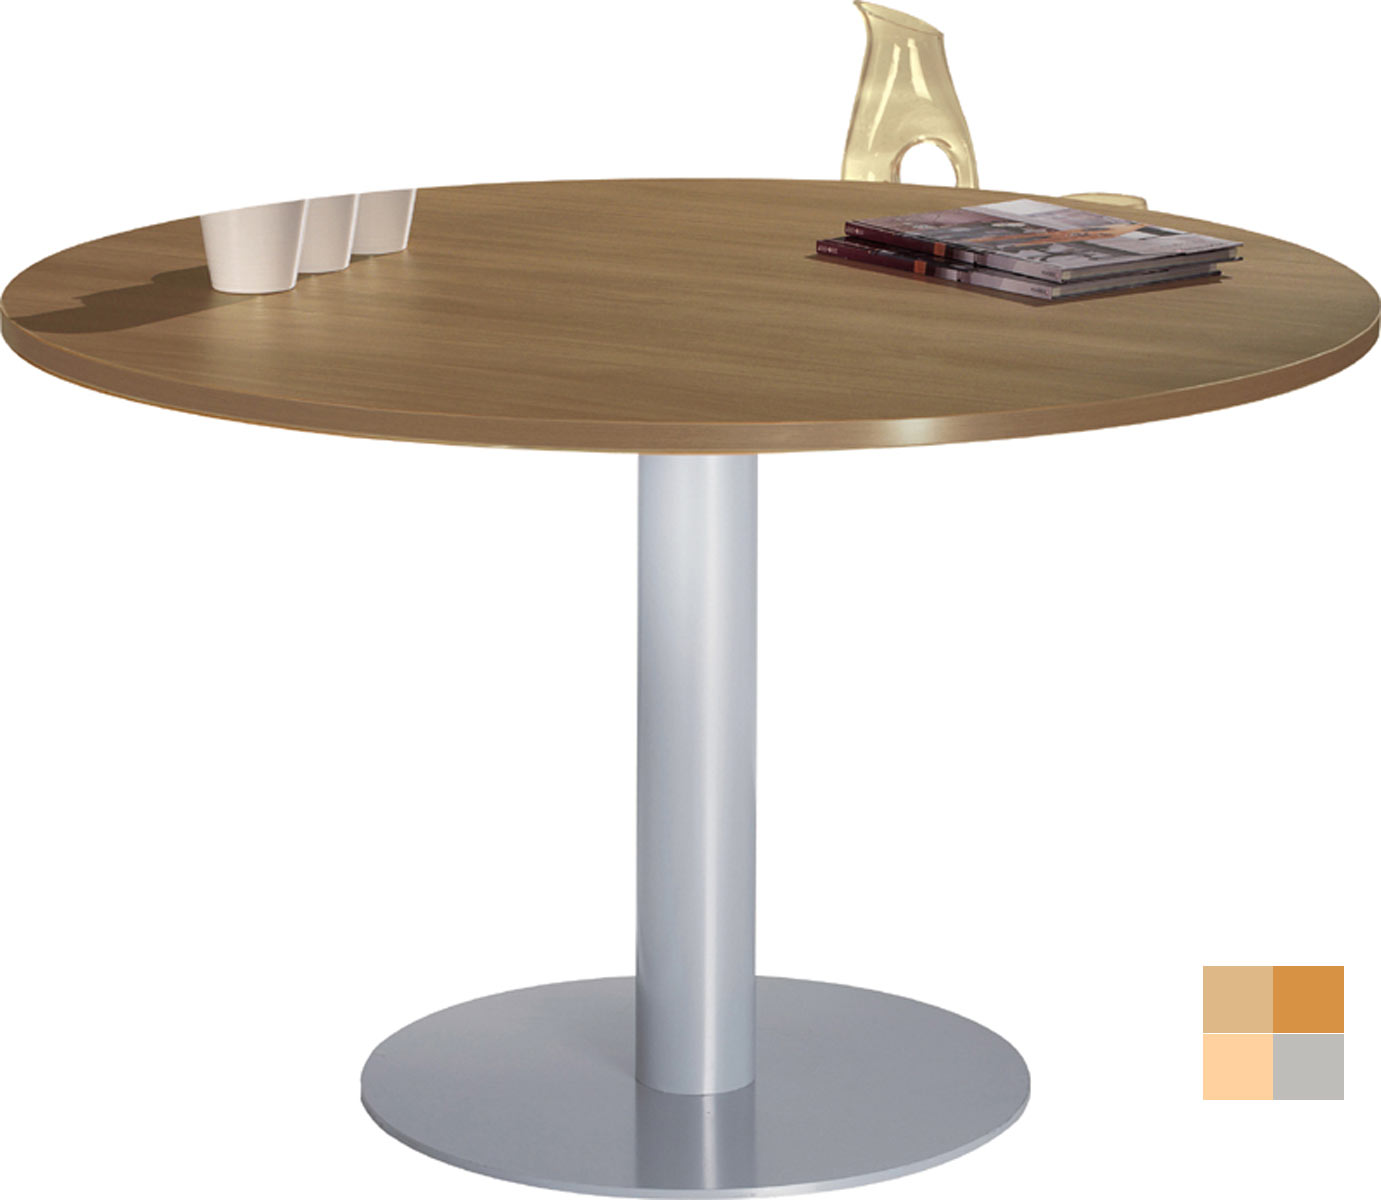 Table haute ronde cuisine maison design for Table ronde cuisine design